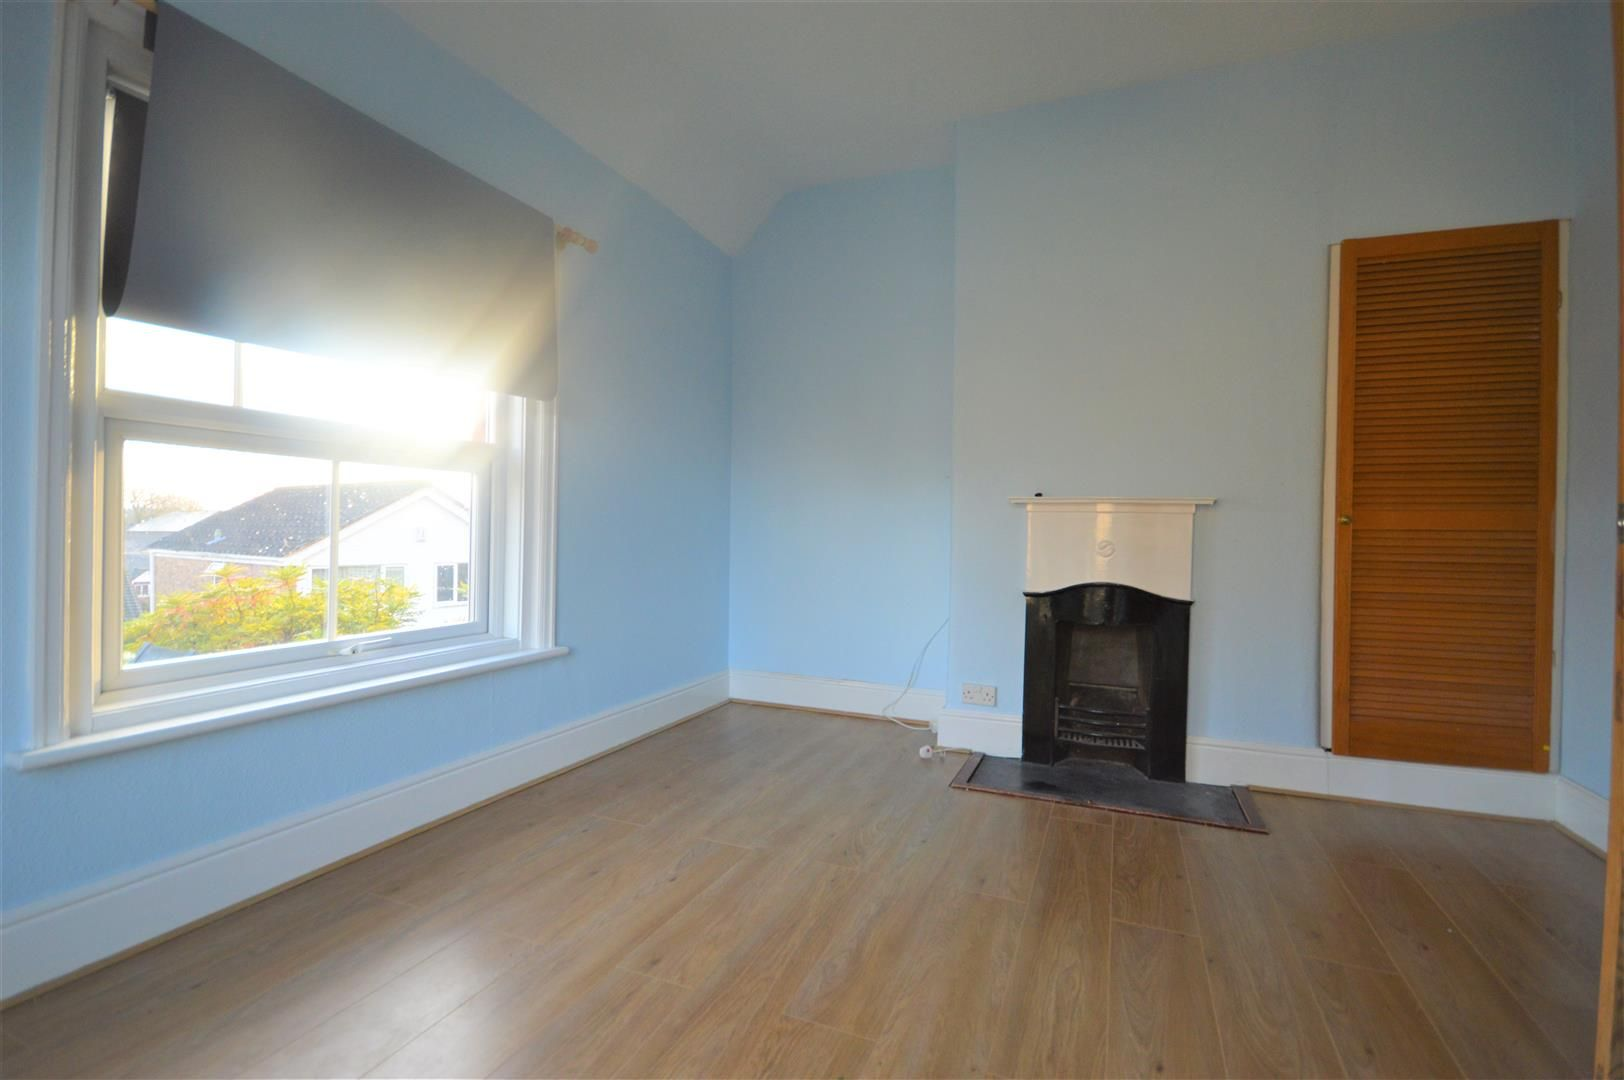 3 bed end-of-terrace for sale in Leominster  - Property Image 7